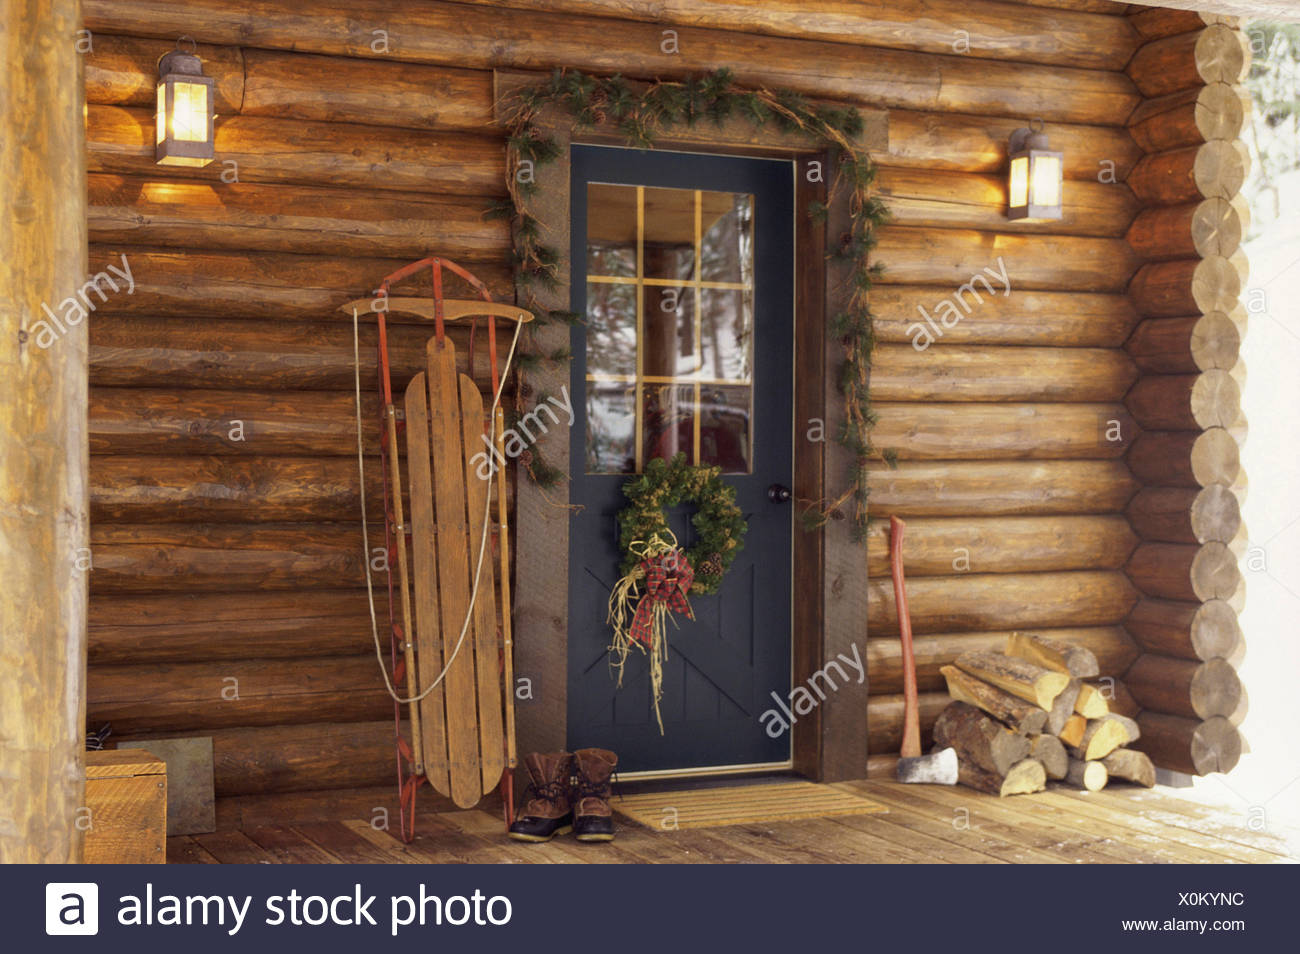 christmas decorations around a log cabin door